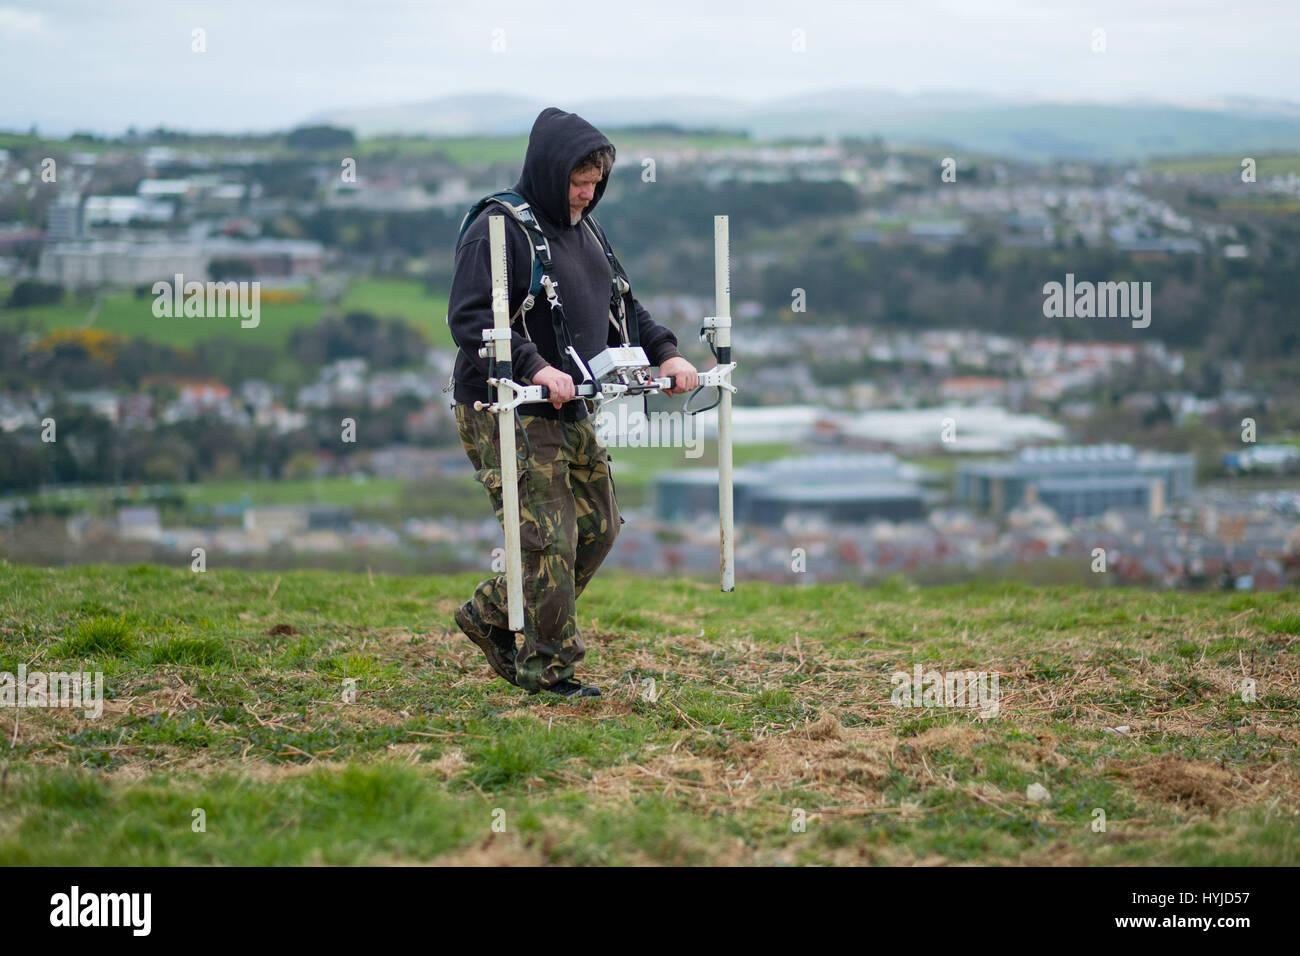 Aberystwyth Wales UK, Wednesday 05 April 2017   Archaeology in the UK : Archaeologists from Archaeology  Wales making - Stock Image